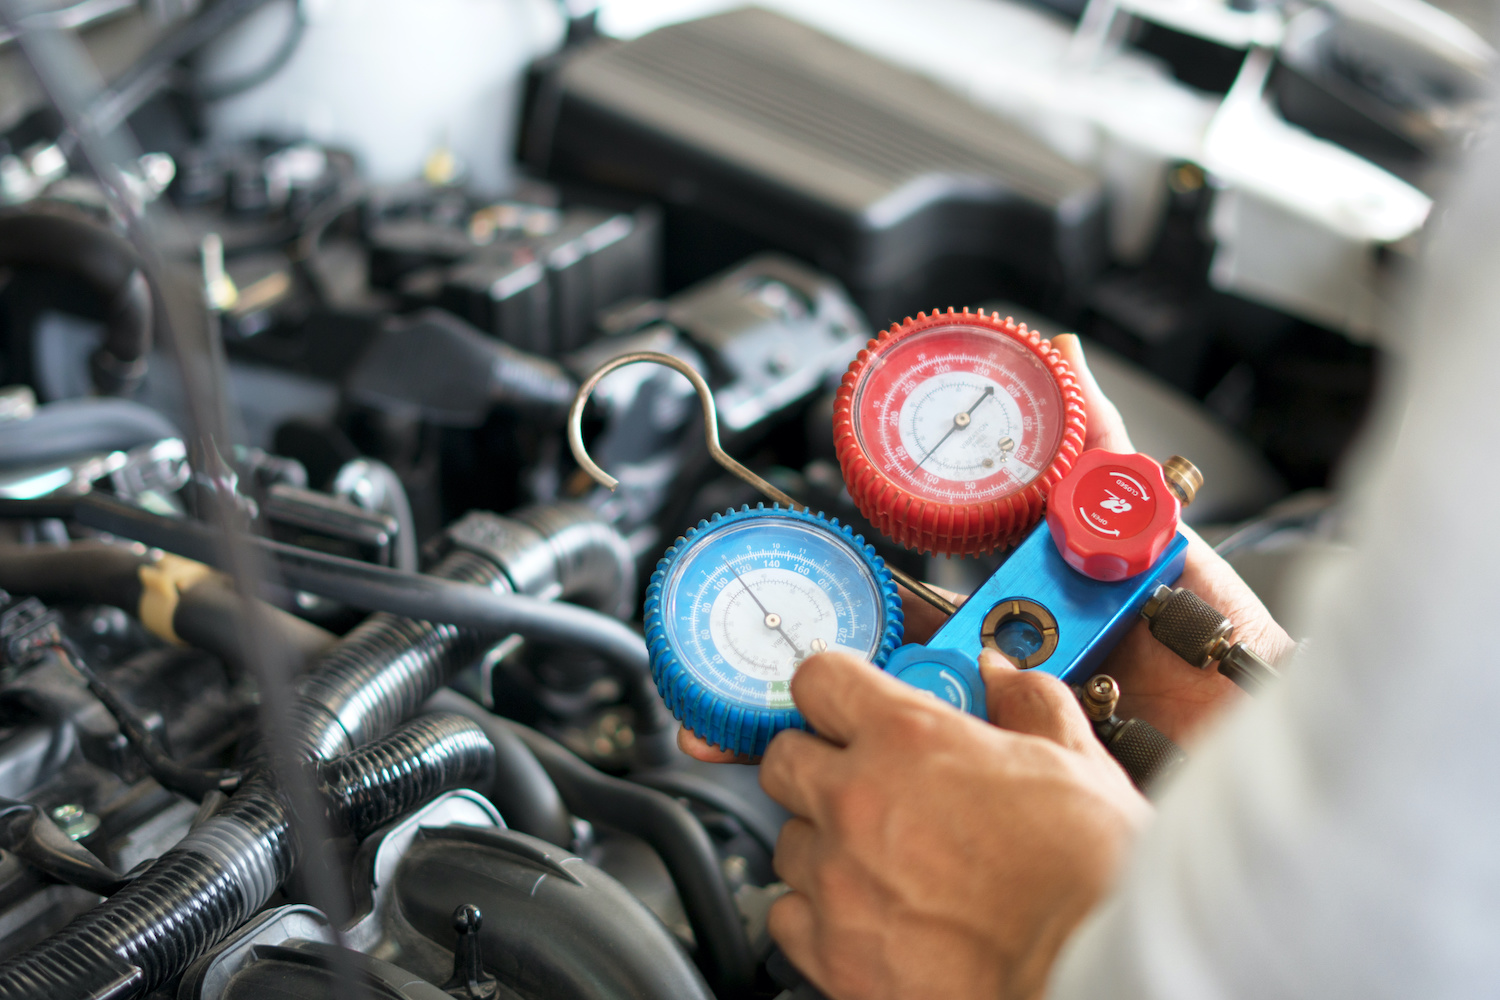 Now's the Time to Have Your Car's A/C Inspected!